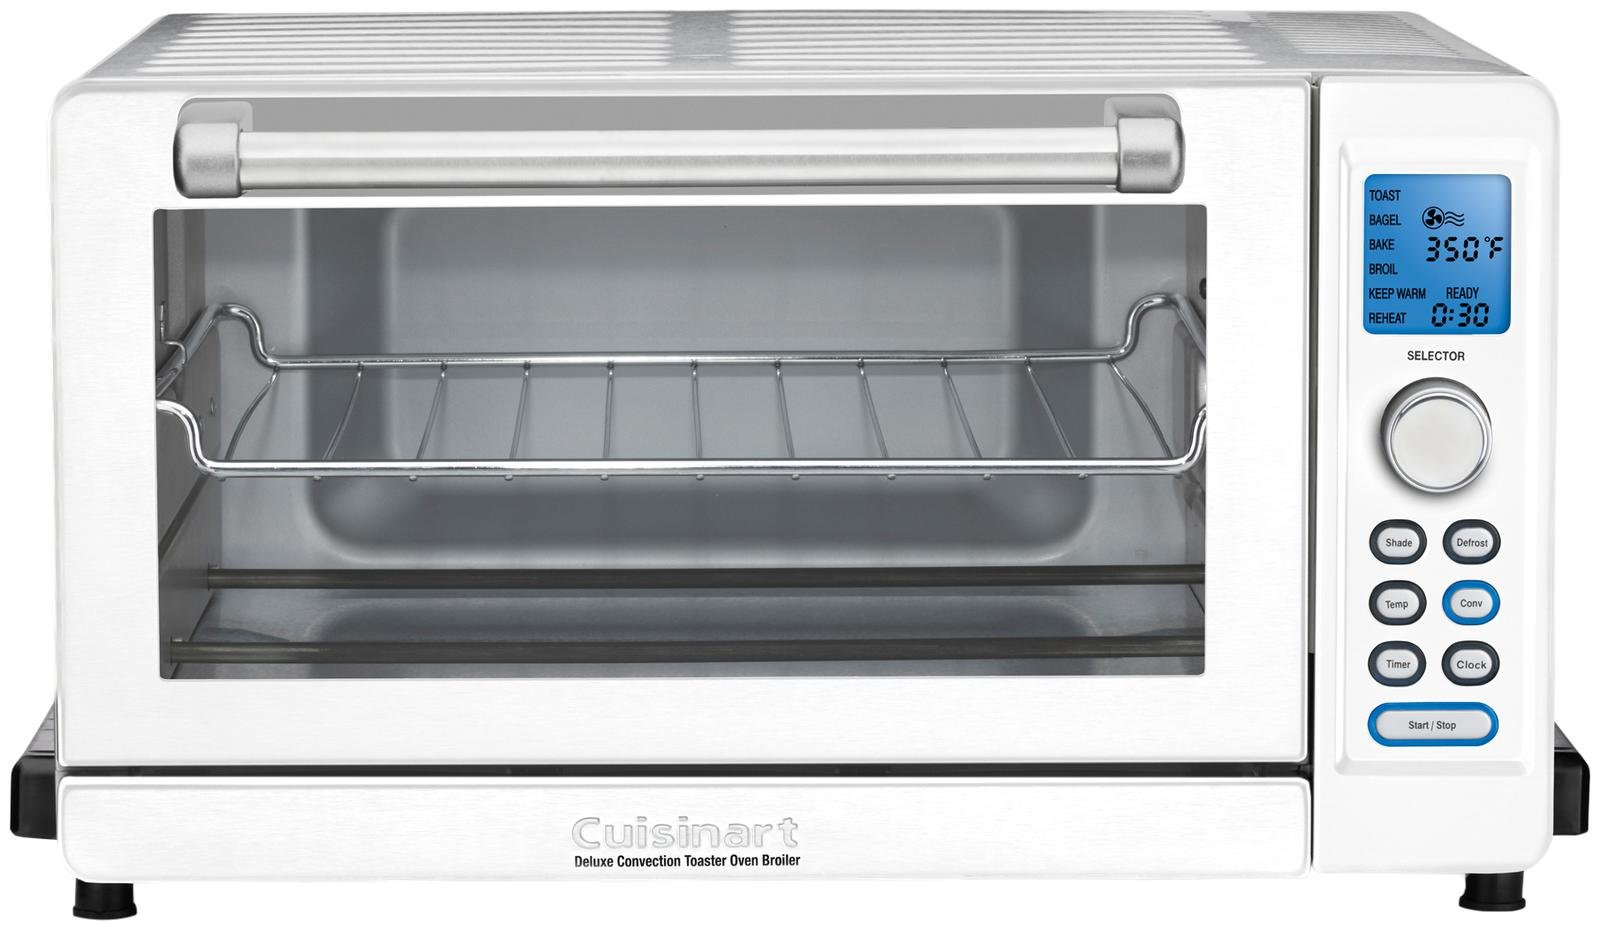 Cuisinart Tob 135w Deluxe Convection Toaster Oven Broiler